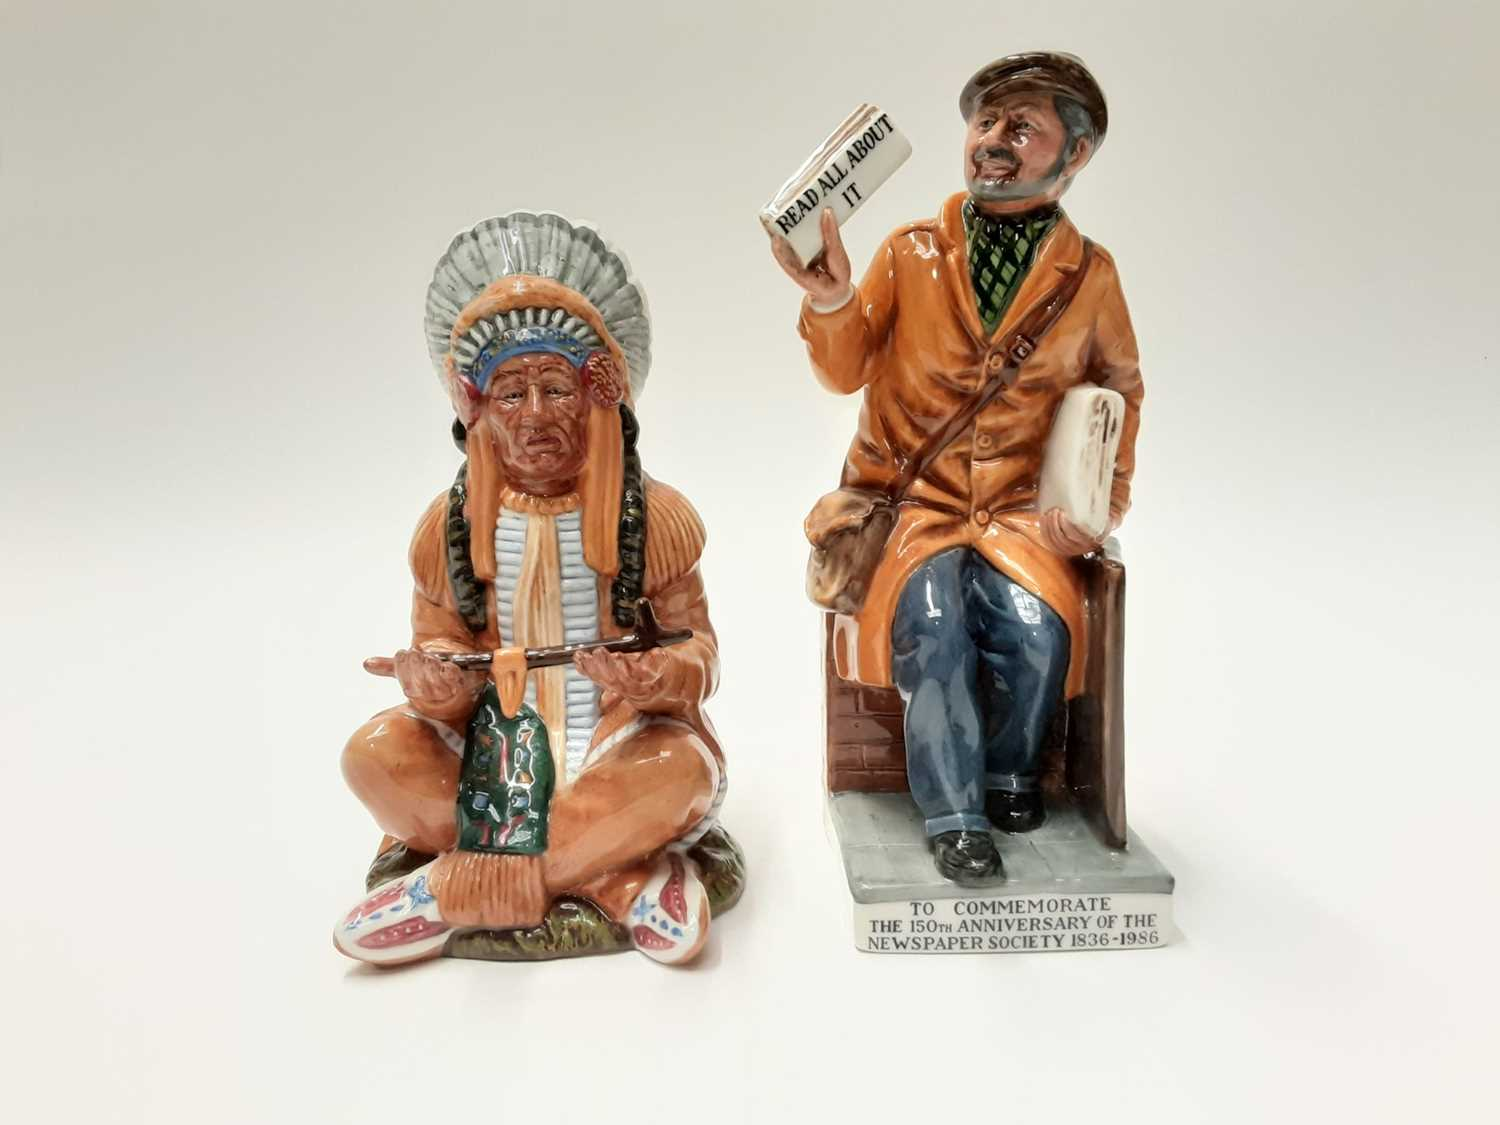 Lot 52 - Royal Doulton limited edition figure - The Newsvendor HN2891, number 586 of 2500, plus another Royal Doulton figure - The Chief HN2892 (2)